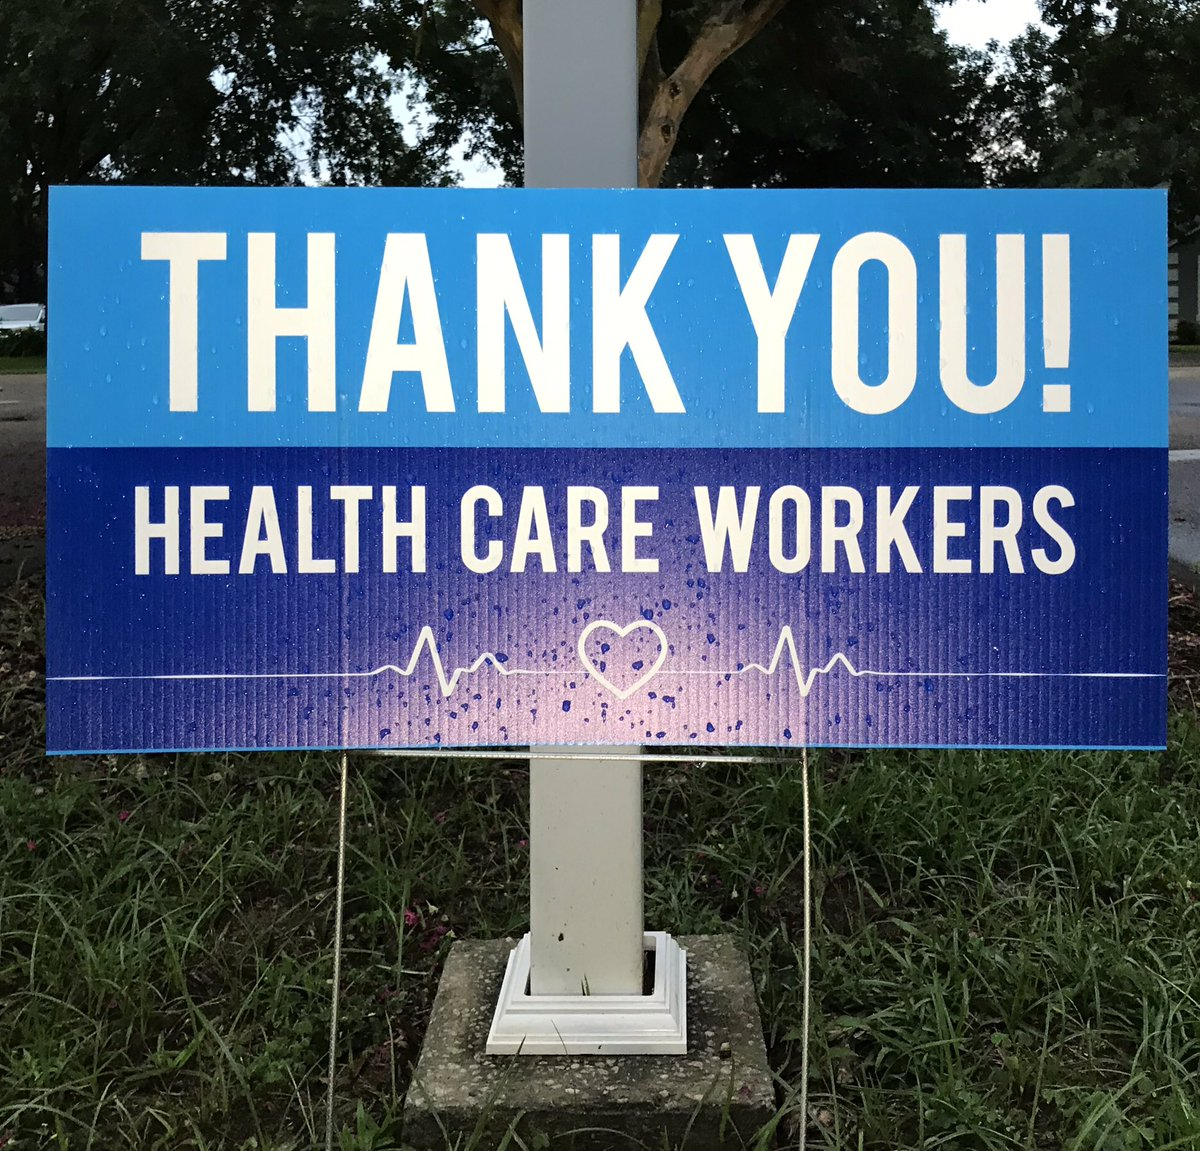 """Today & every day, exponentially during a pandemic. 🏥   #RunChatHunt — """"Thank You"""" sign for front-line workers ✅.  #hcwshoutout #IStandWithYou #Fitness #teamnuun #HSHive #RunBlueRidge #KeepItTight #SquirrelsNutButter #AltraRedTeamUS #TeamROADiD #RunChat #IHeartTally"""